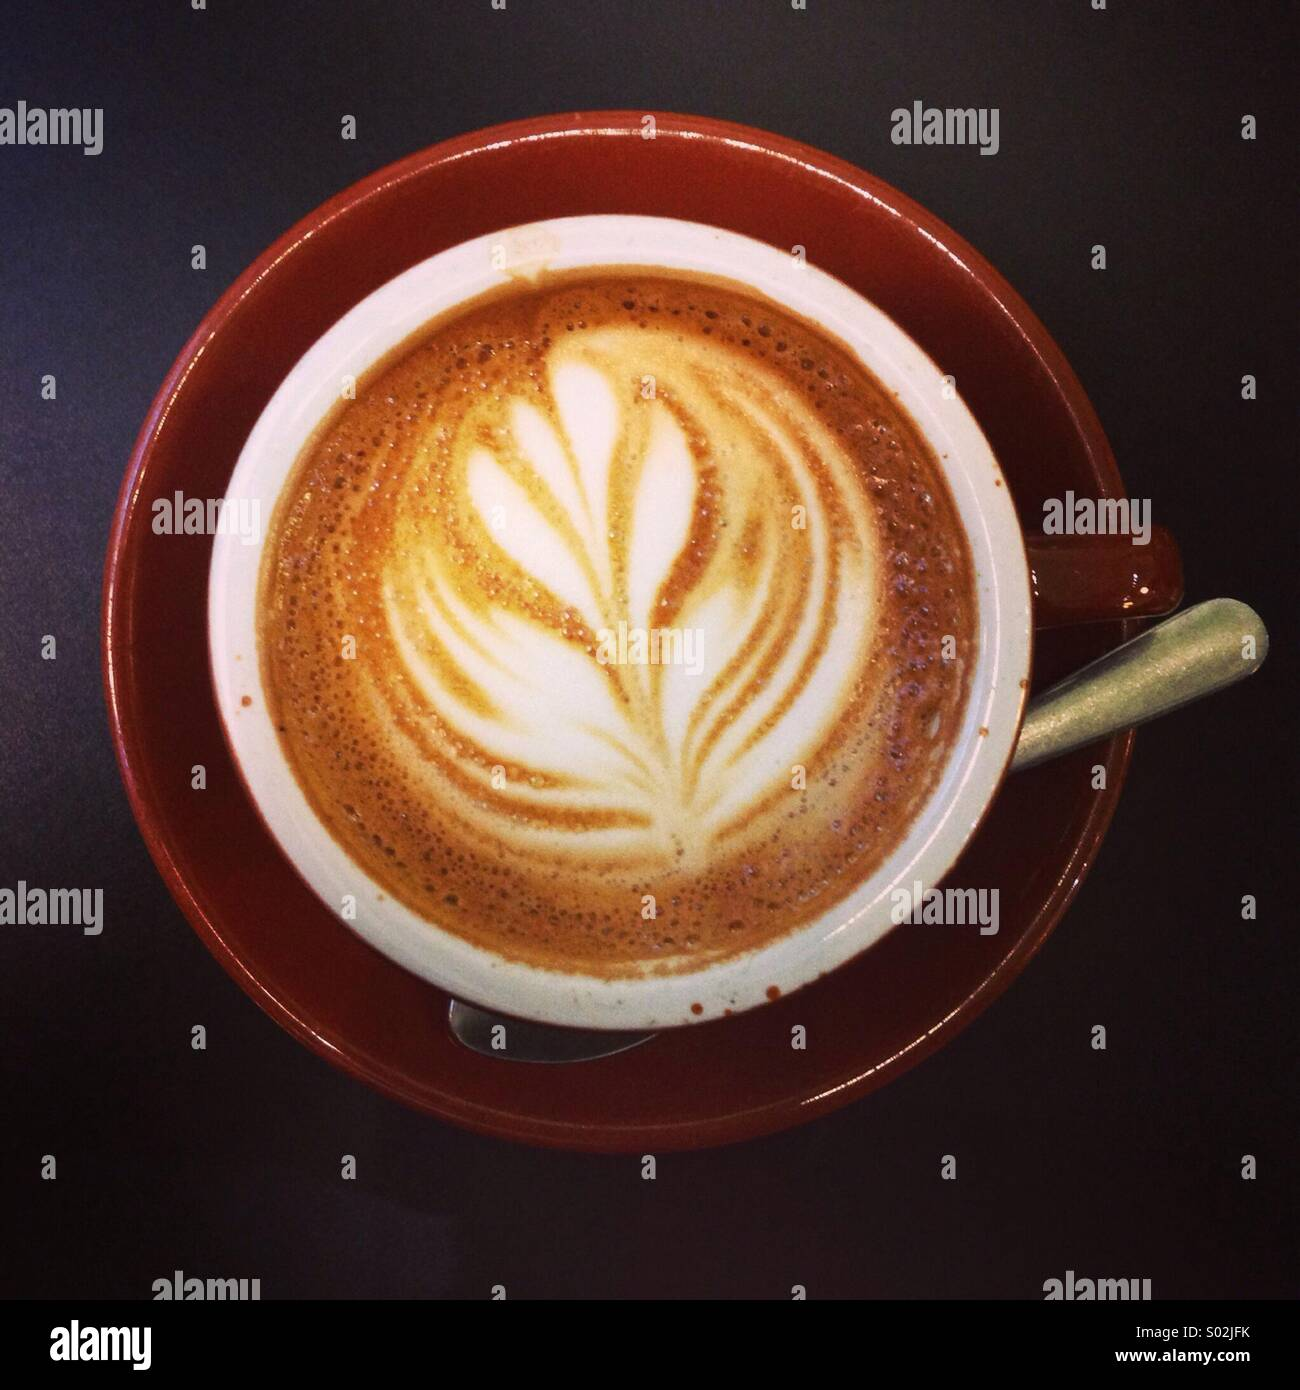 Cappuccino pattern in the froth - Stock Image